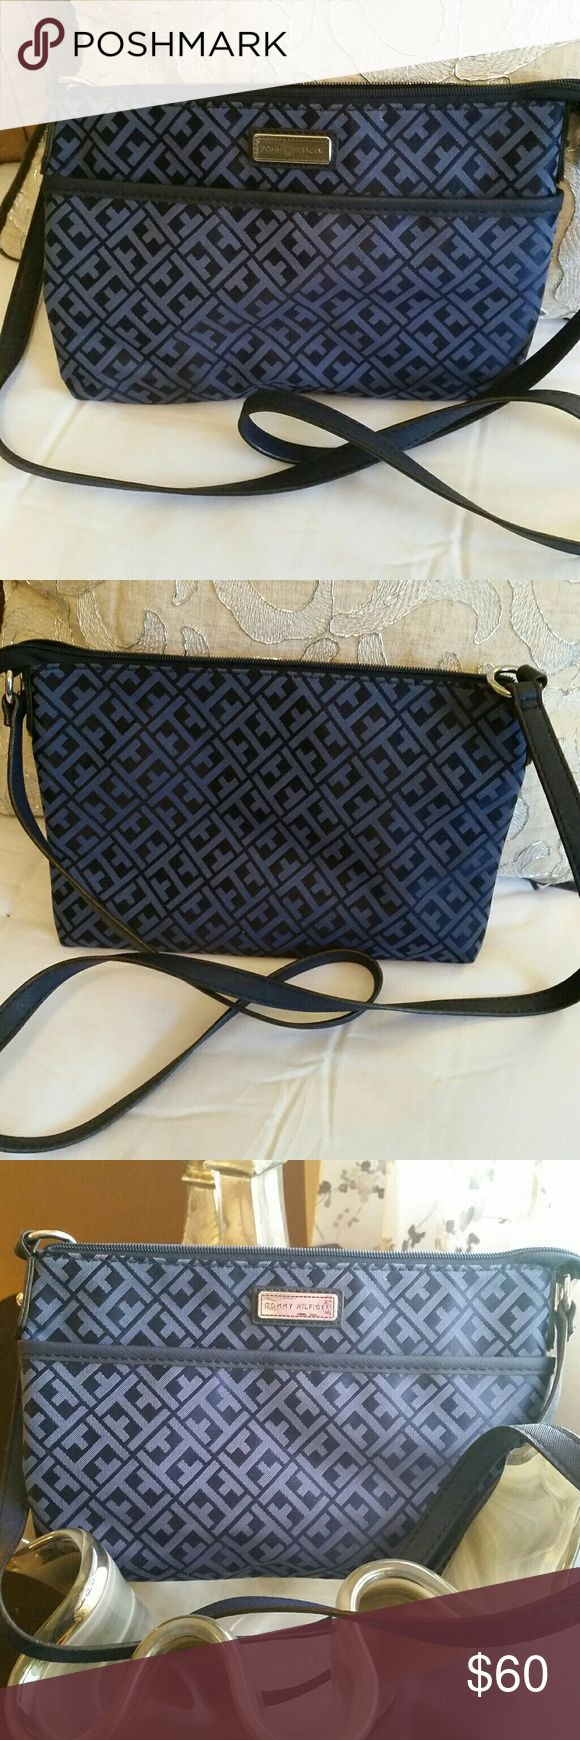 🆕NWOT Tommy Hilfiger Crossbody🆕 🆕NWOT Tommy Hilfiger blue cross body bag. One pocket on the front of the bag, one zippered pocket inside and one open pocket inside. Beautiful bag perfect for summer fun! 🌞🆕 Tommy Hilfiger Bags Crossbody Bags